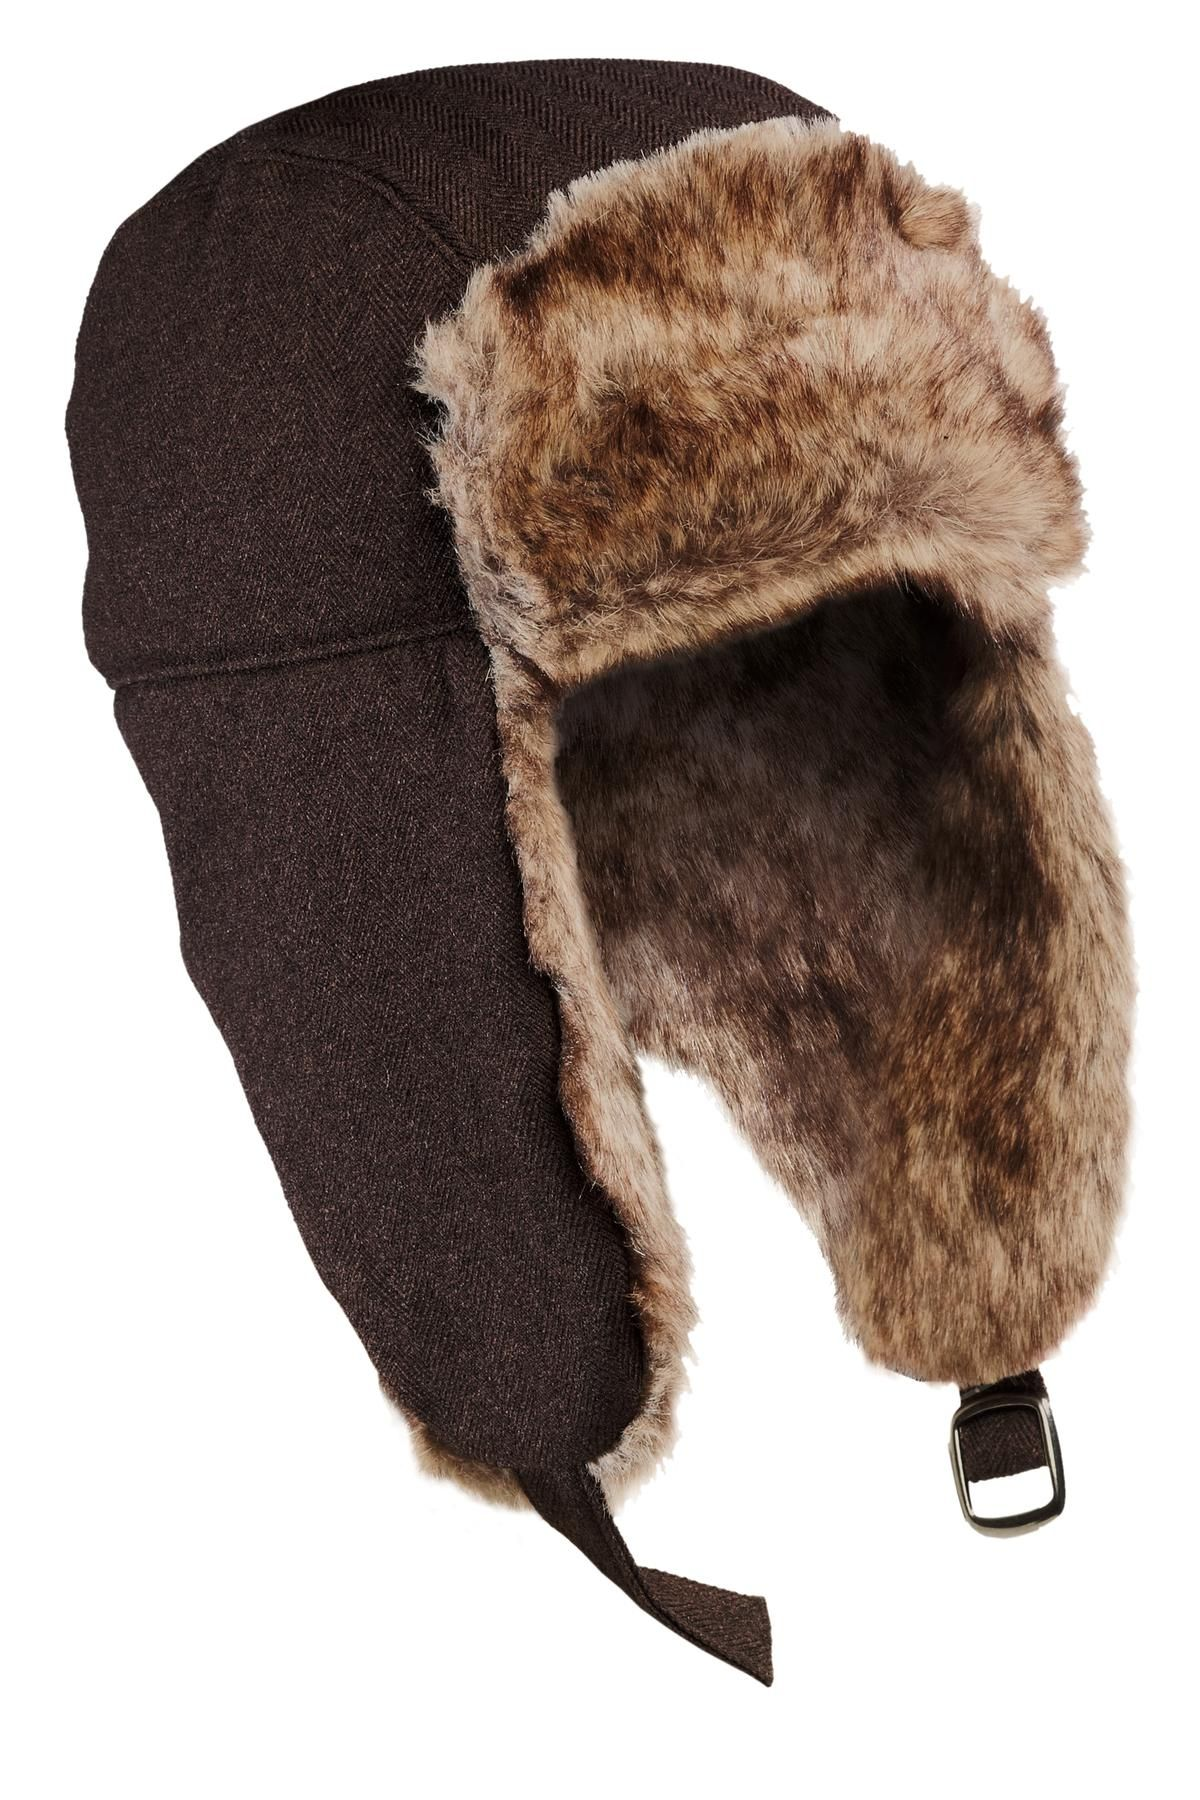 4b6c110ae8520b Winter is coming! No Elmer Fudd here. Trap nothing but style in this faux  fur-lined favorite. #trapper #winteriscoming #hat